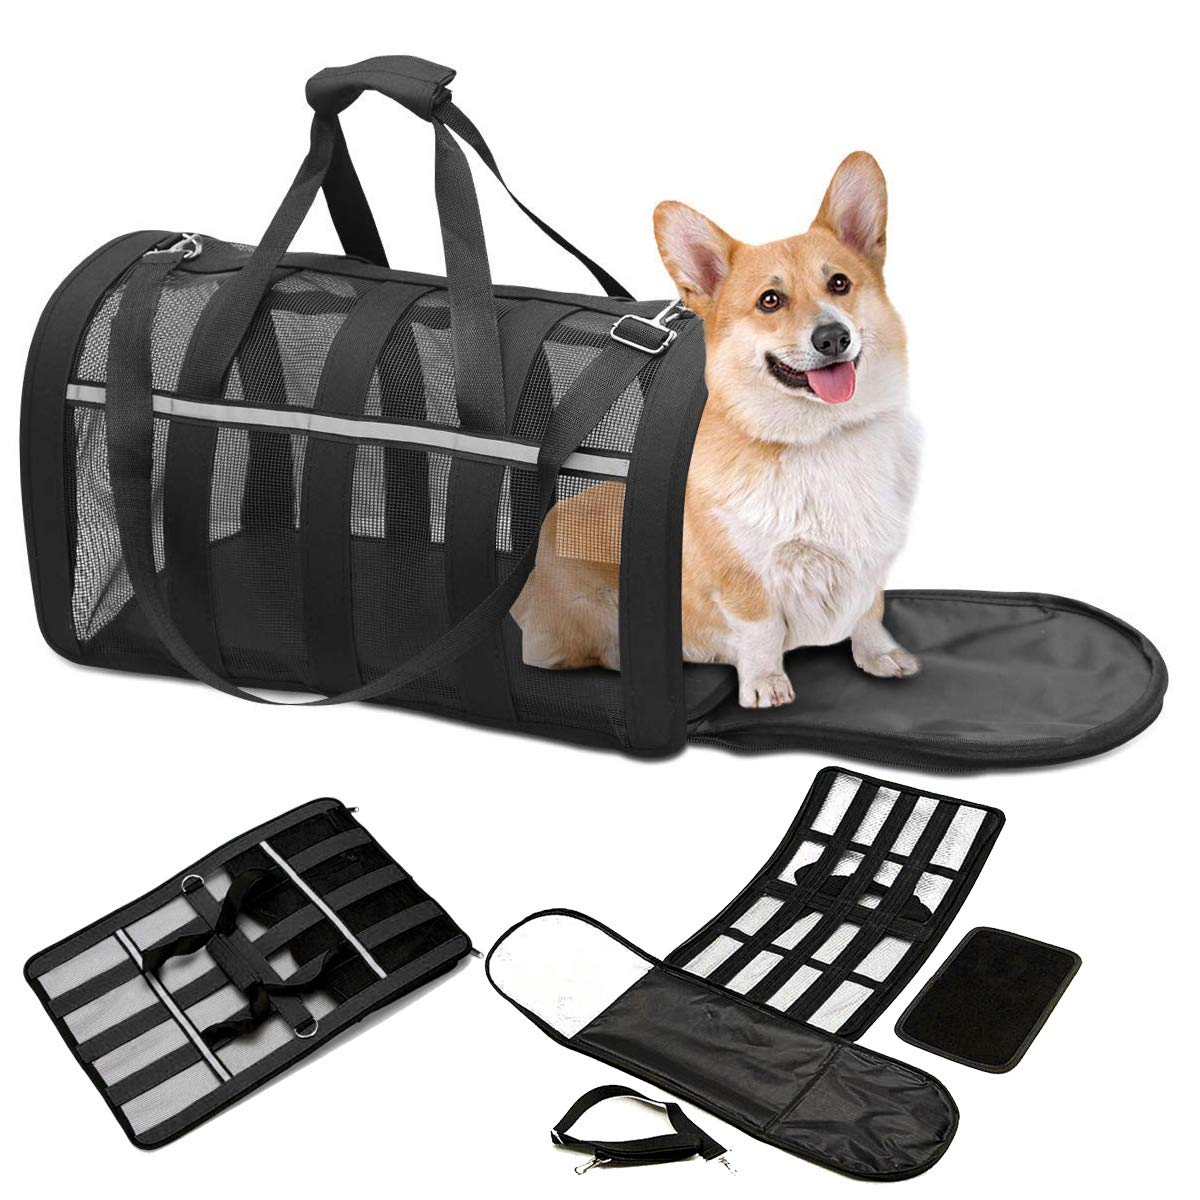 CLEEBOURG Pet Carrier Bag Airline Approved Dog Cat Travel Carrier Bags Lightweight Collapsible Under-seat Animal Carrier Bag for Pets Mesh Webbing Black